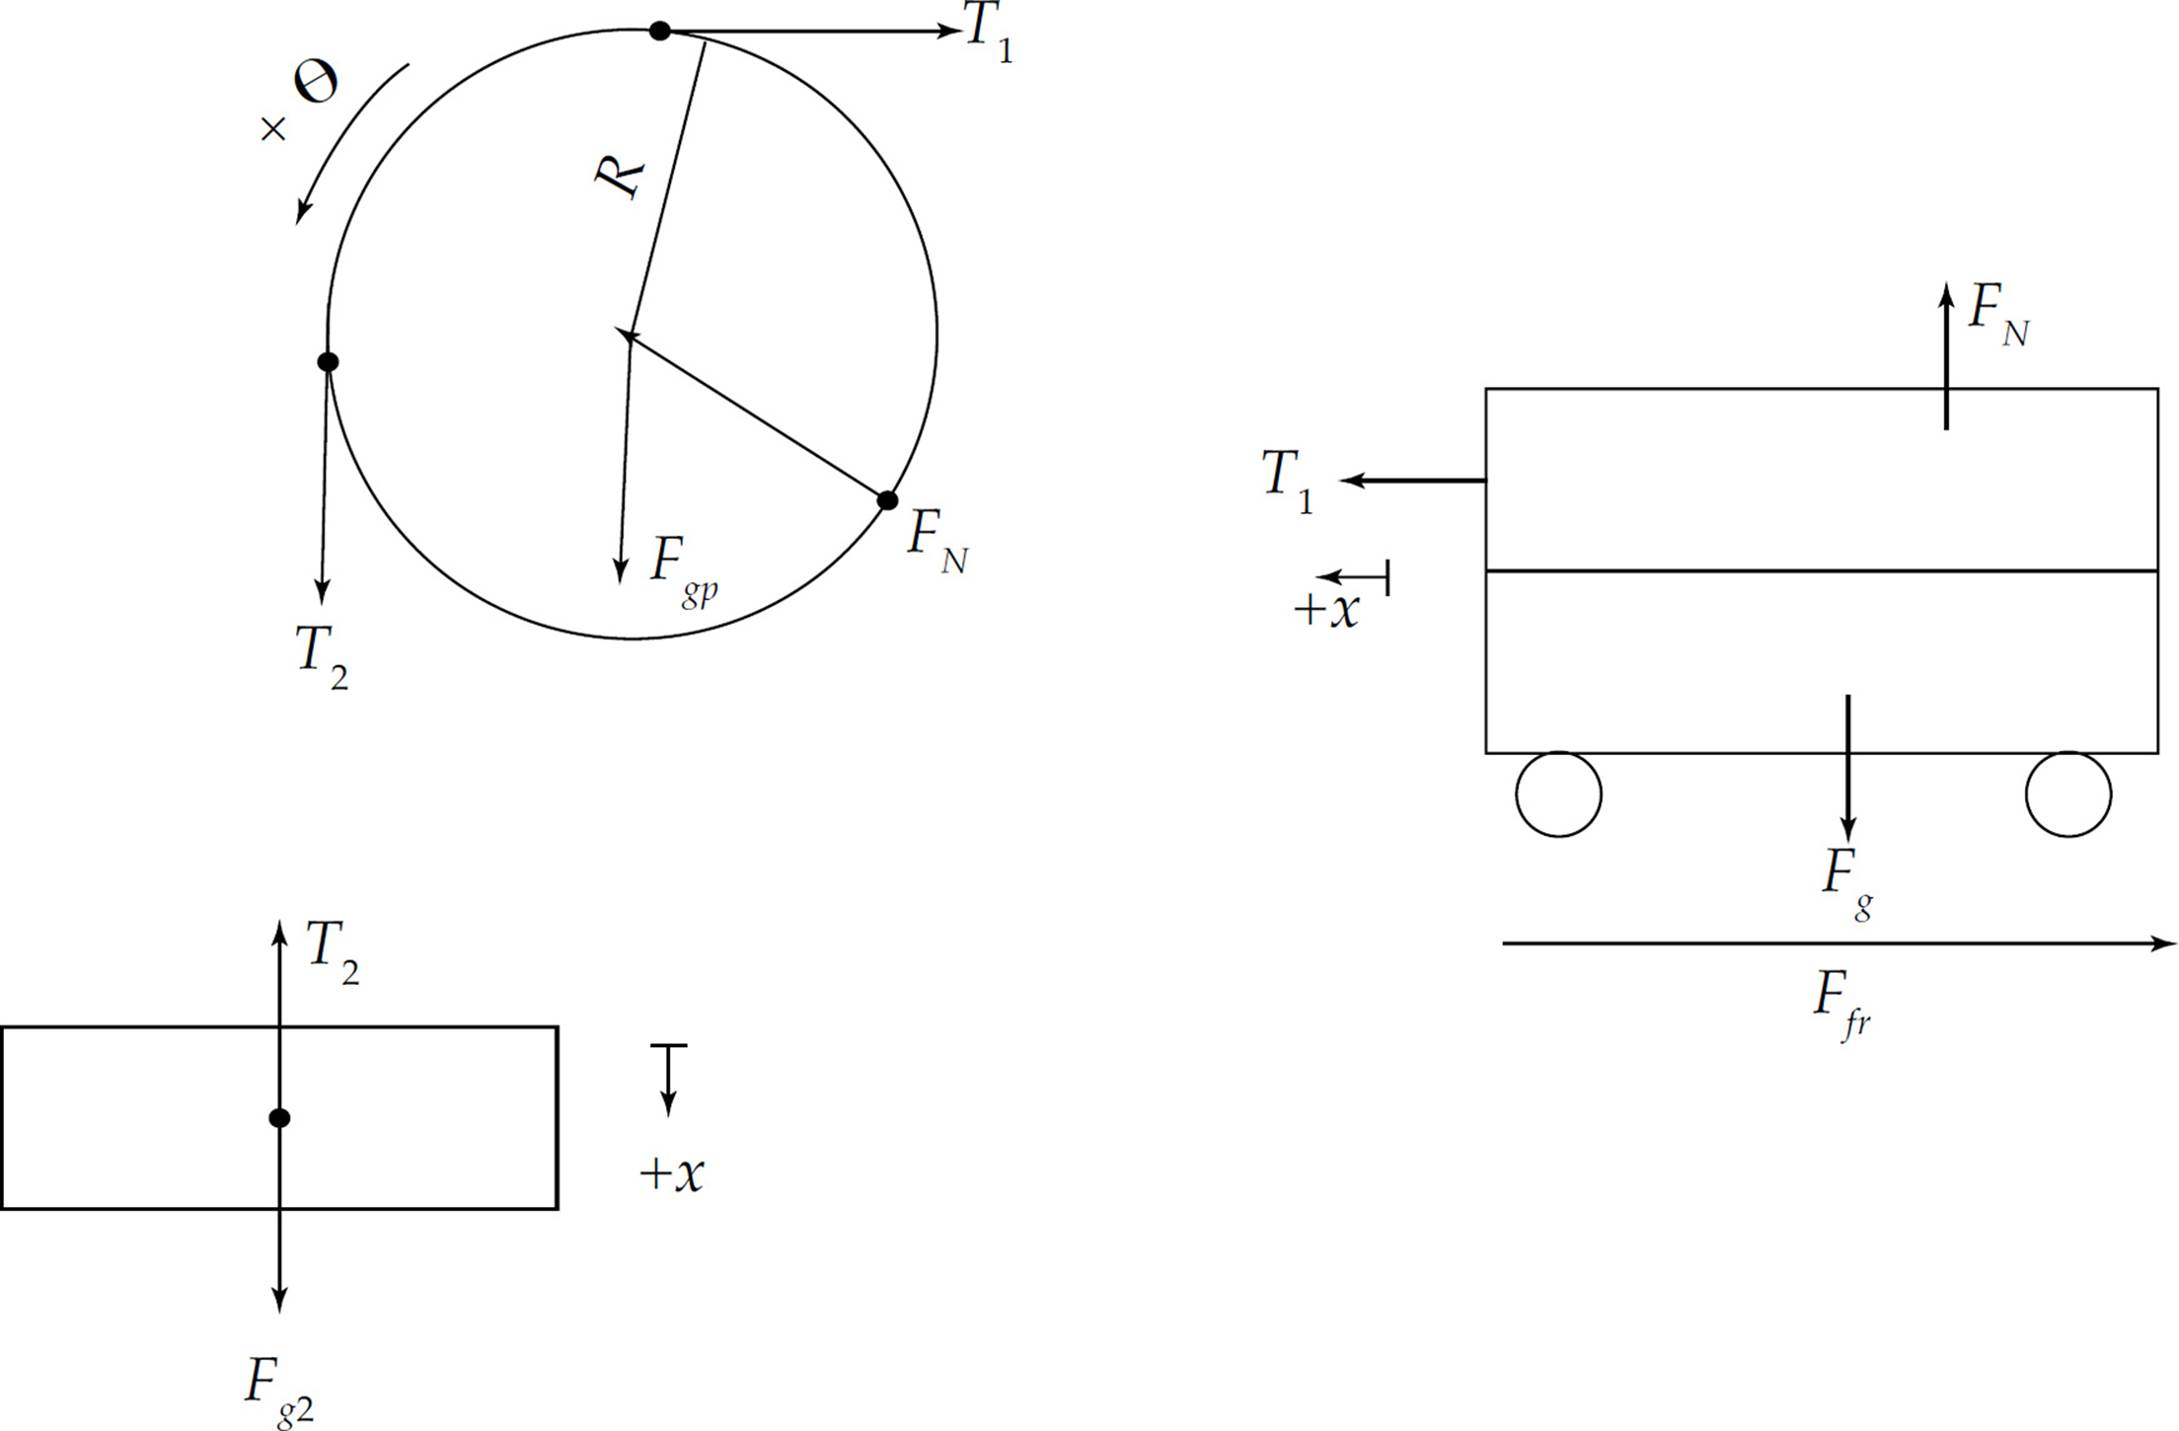 Practice Test 2 Answers And Explanations The Princeton Review Ap Acceleration Due To Gravity Diagram Free Body For This Use Motion Detector Measure Velocity Of Cart Find Also Hanging Mass Since They Are Attached